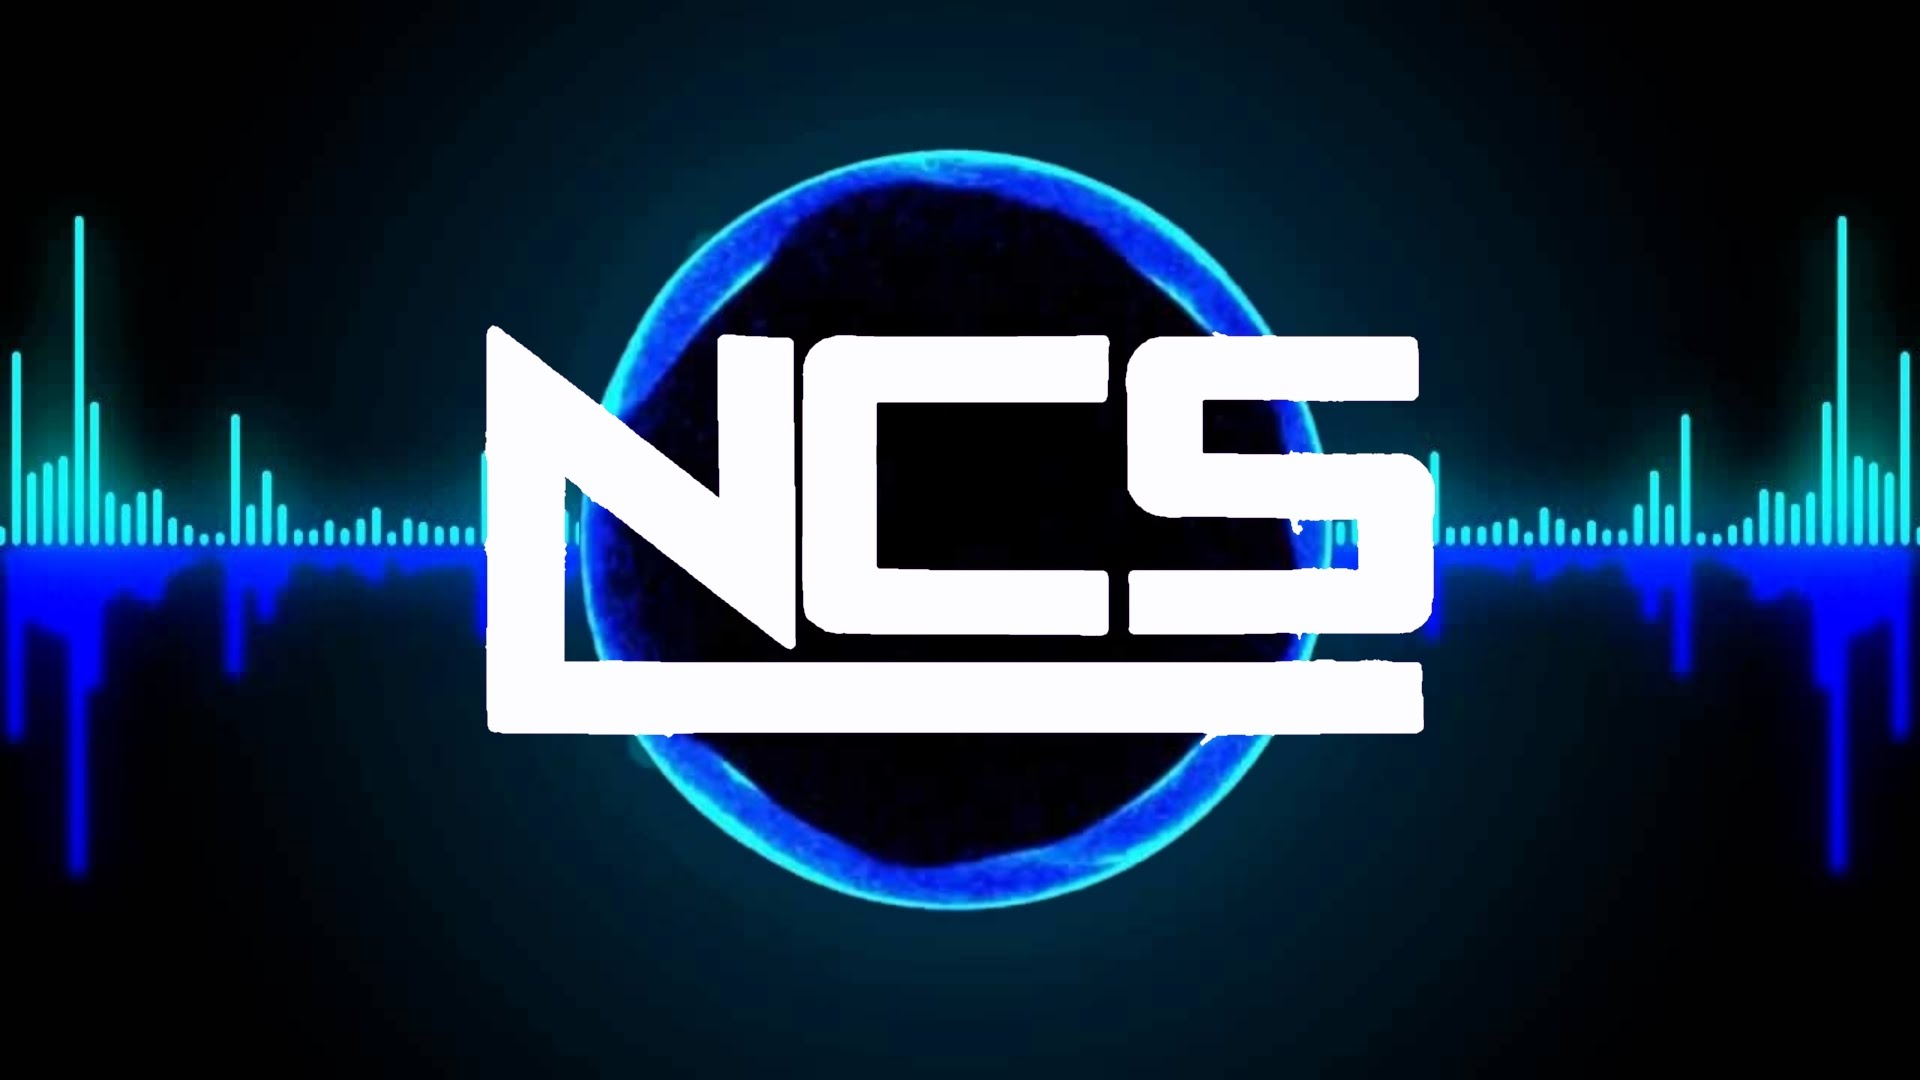 Best NCS Gaming Video Music NO COPYRIGHT - YouTube